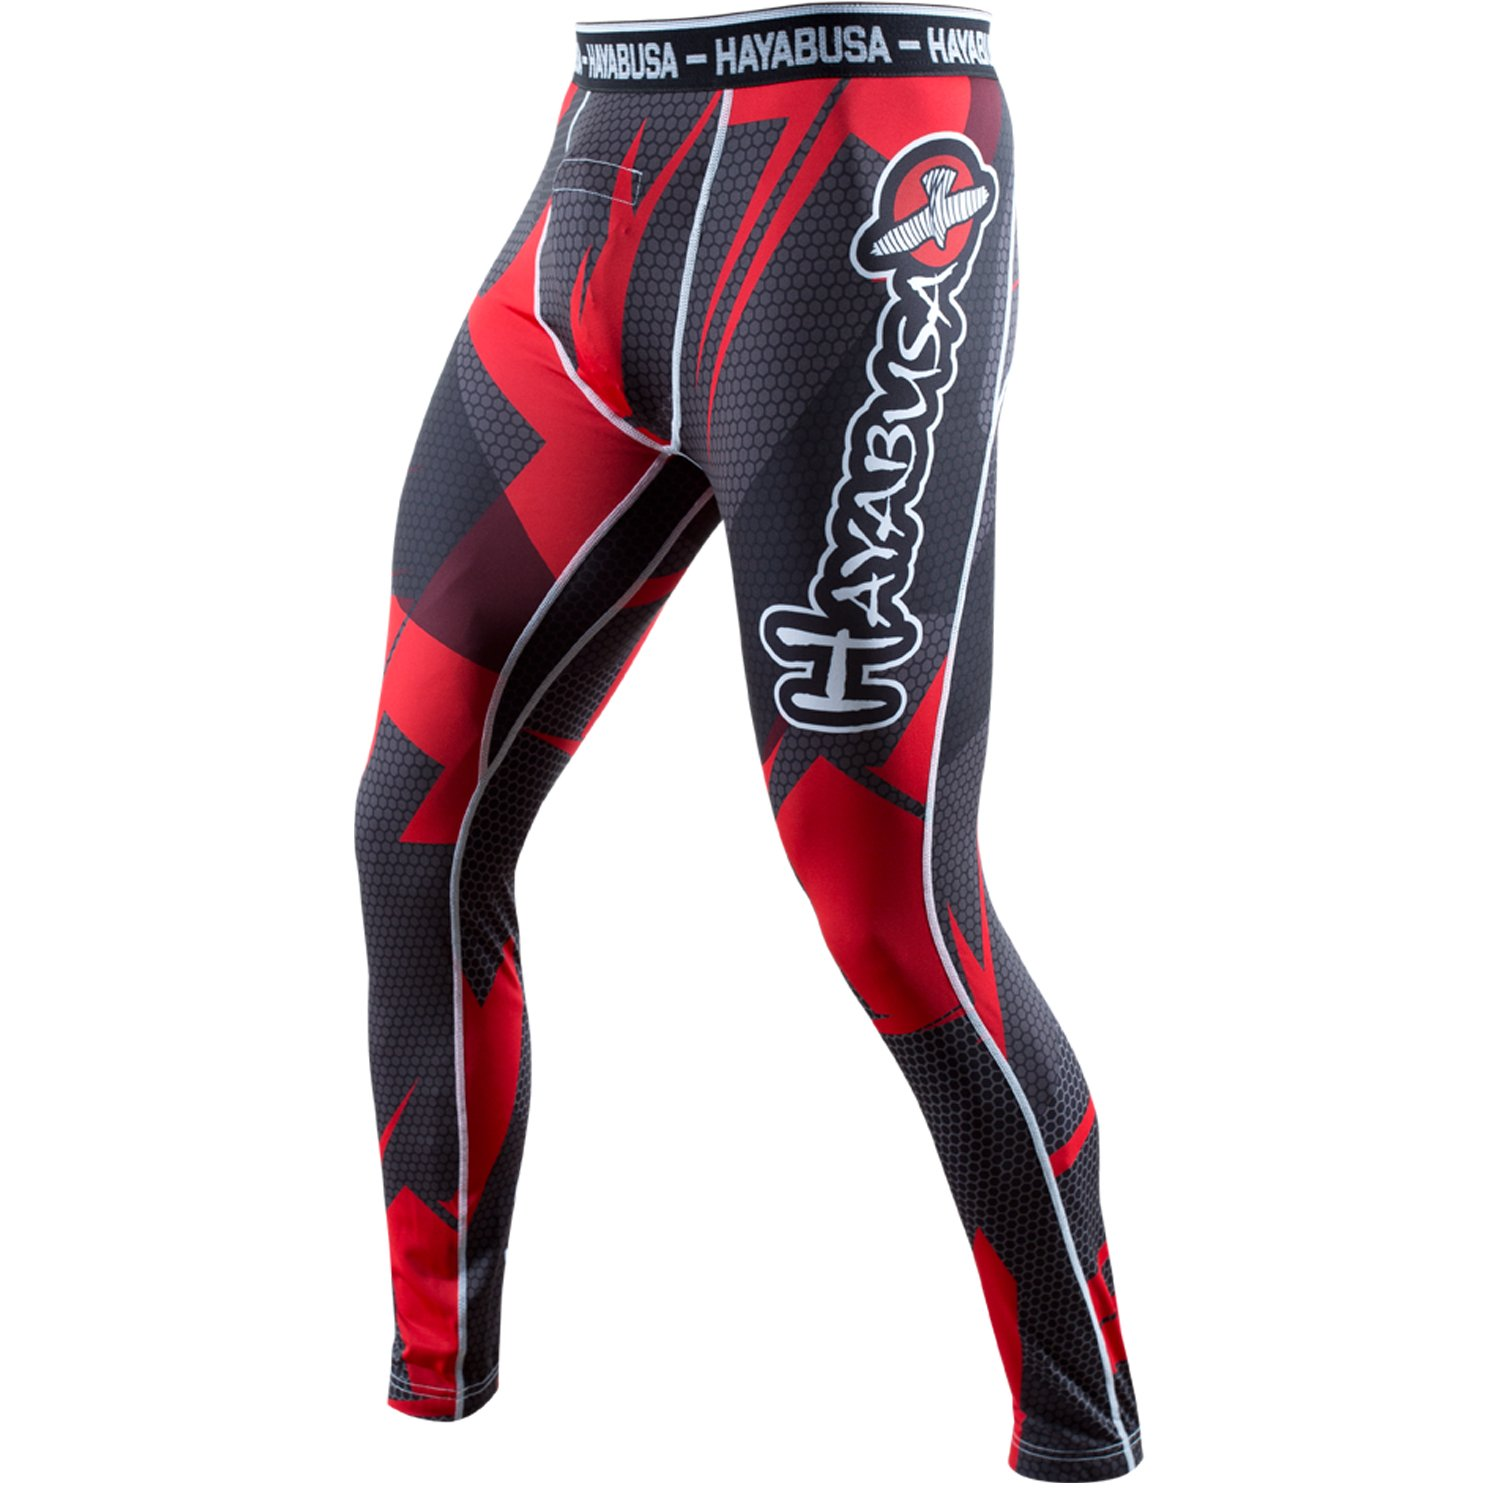 Metaru 47 Silver Compression Pants Hayabusa